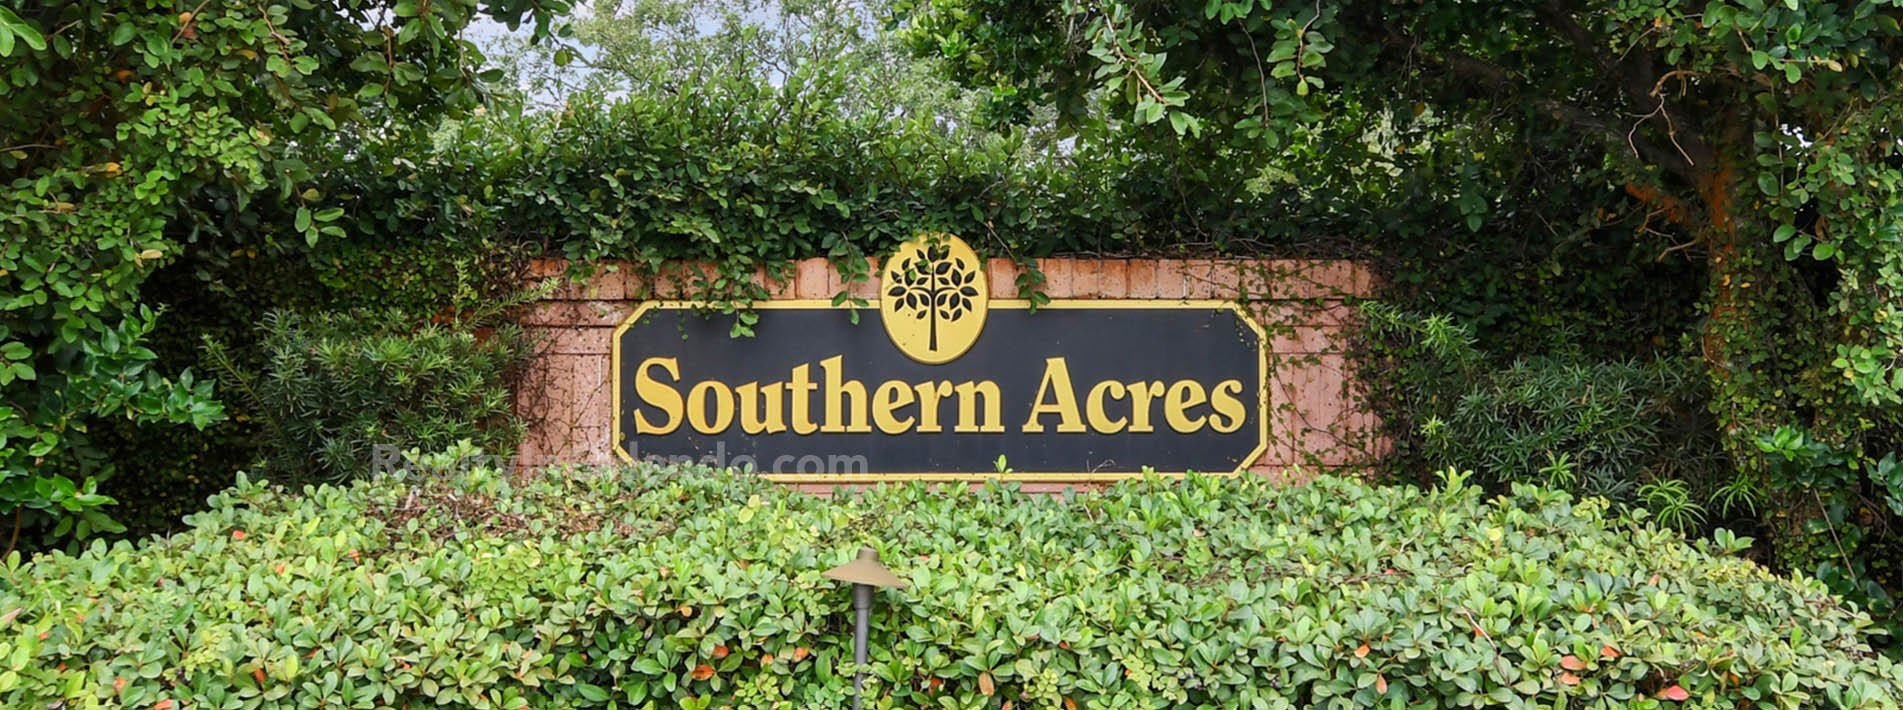 Southern Acres Windermere